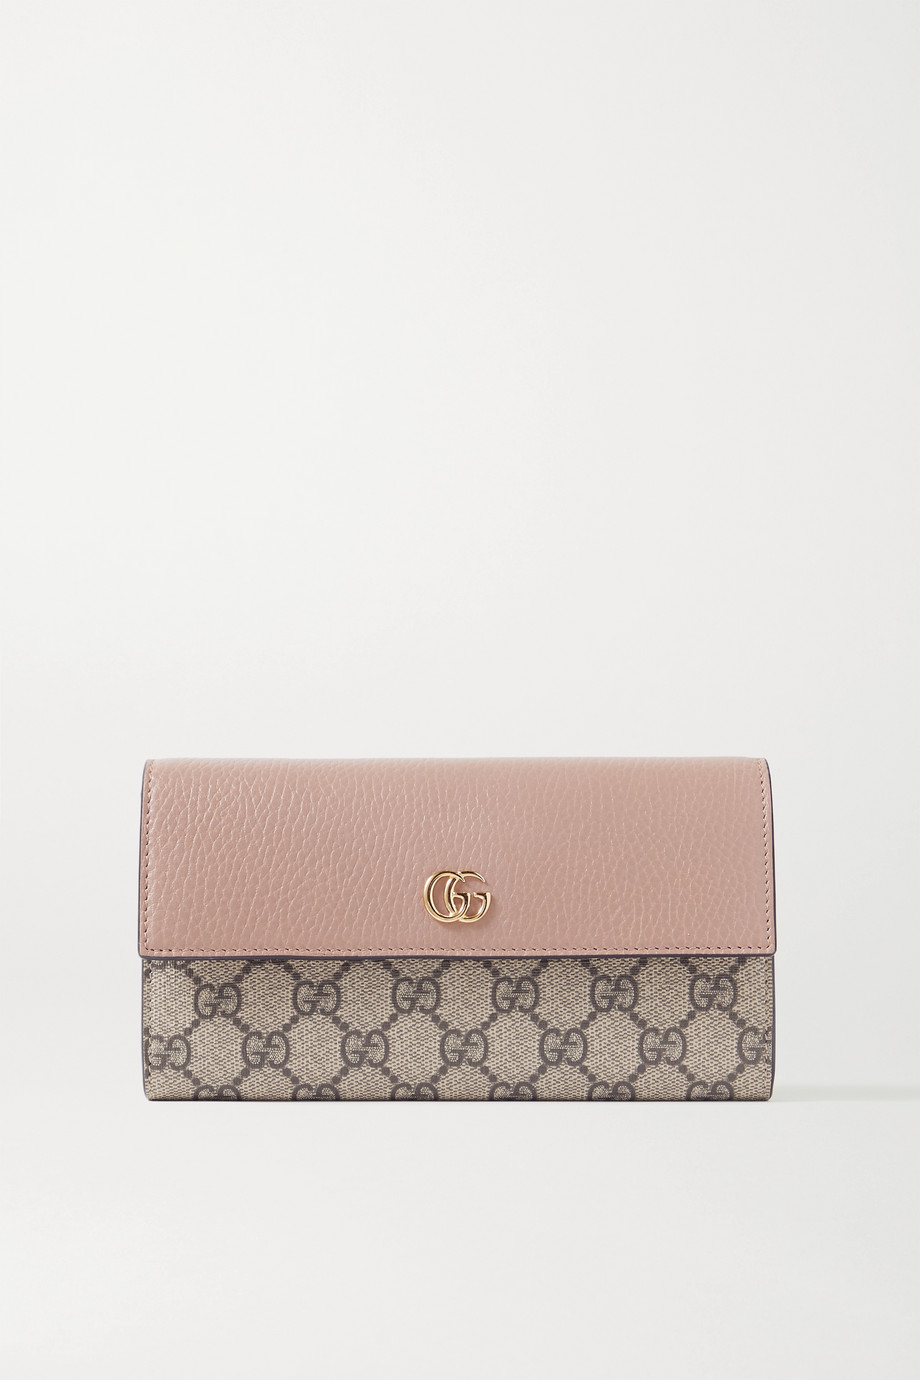 Gucci GG Marmont Petite textured-leather and printed coated-canvas continental wallet